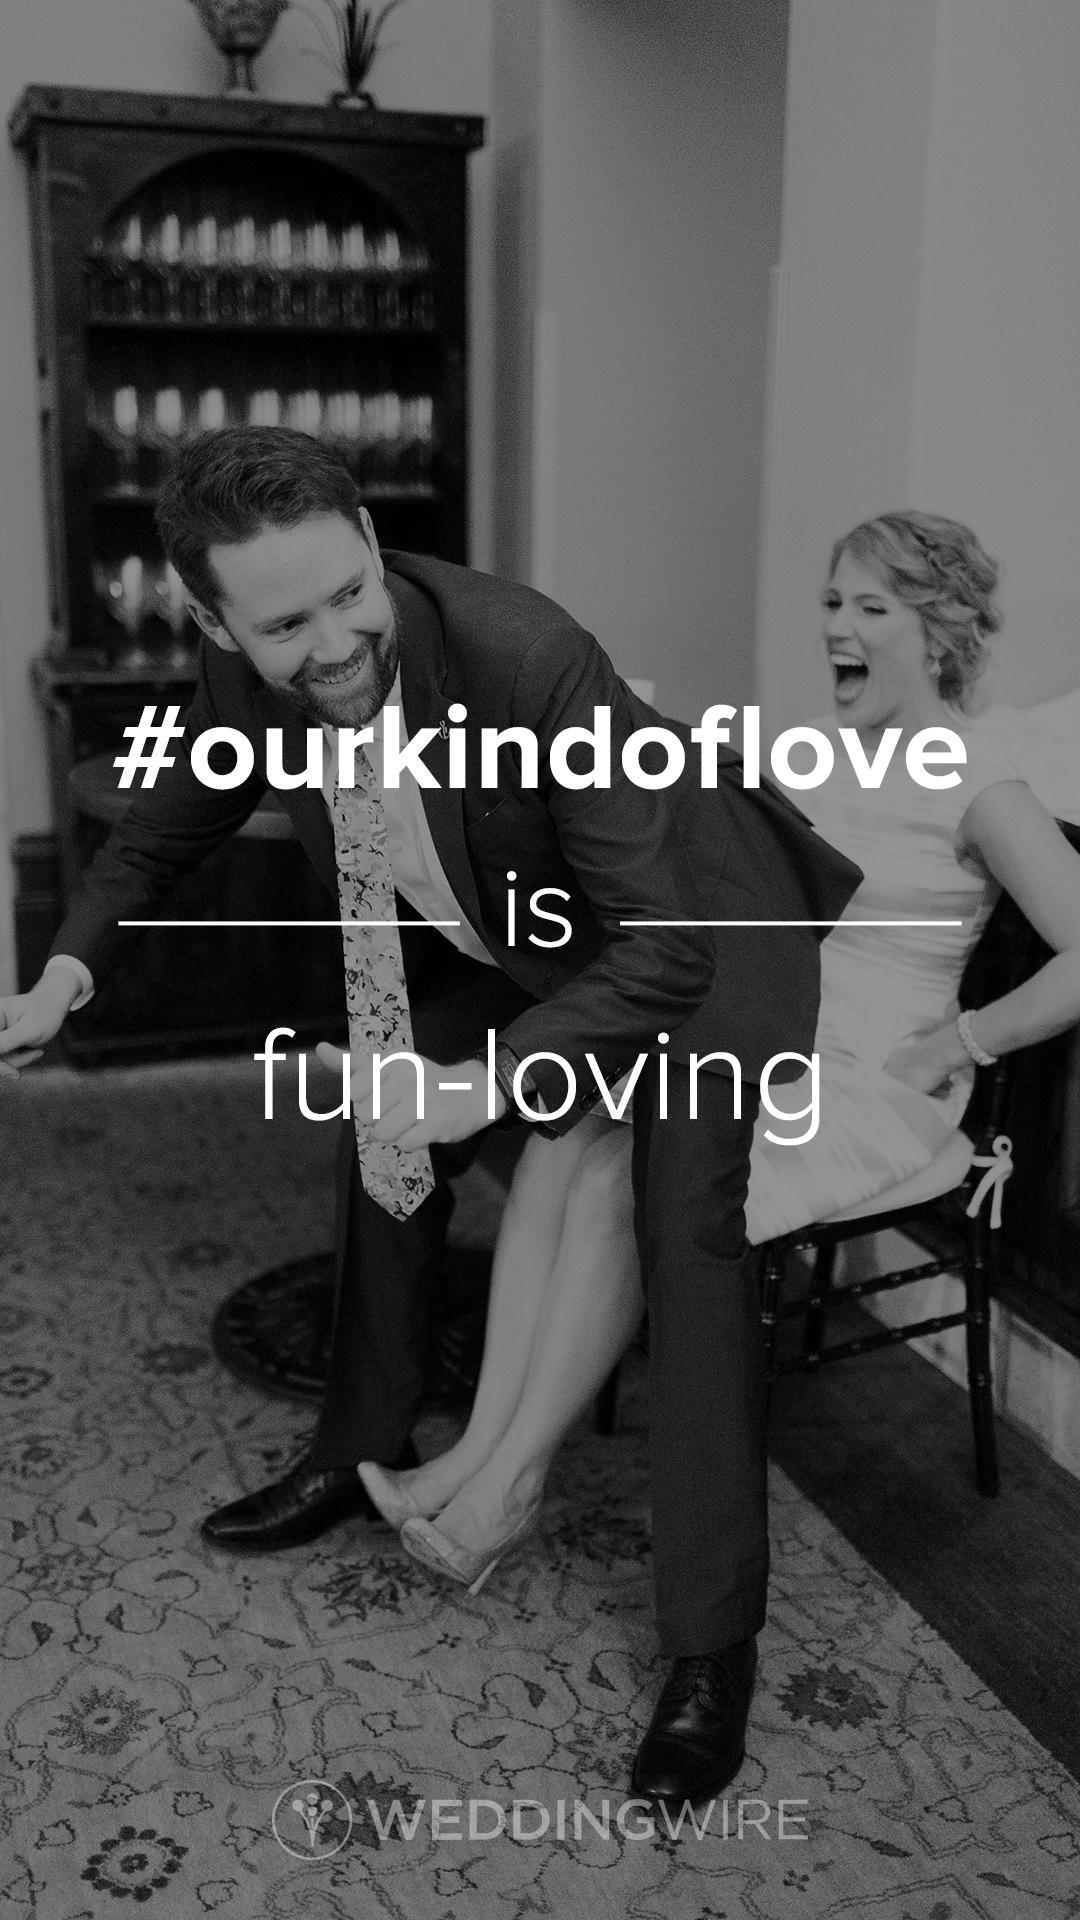 wedding-wednesday-ourkindoflove